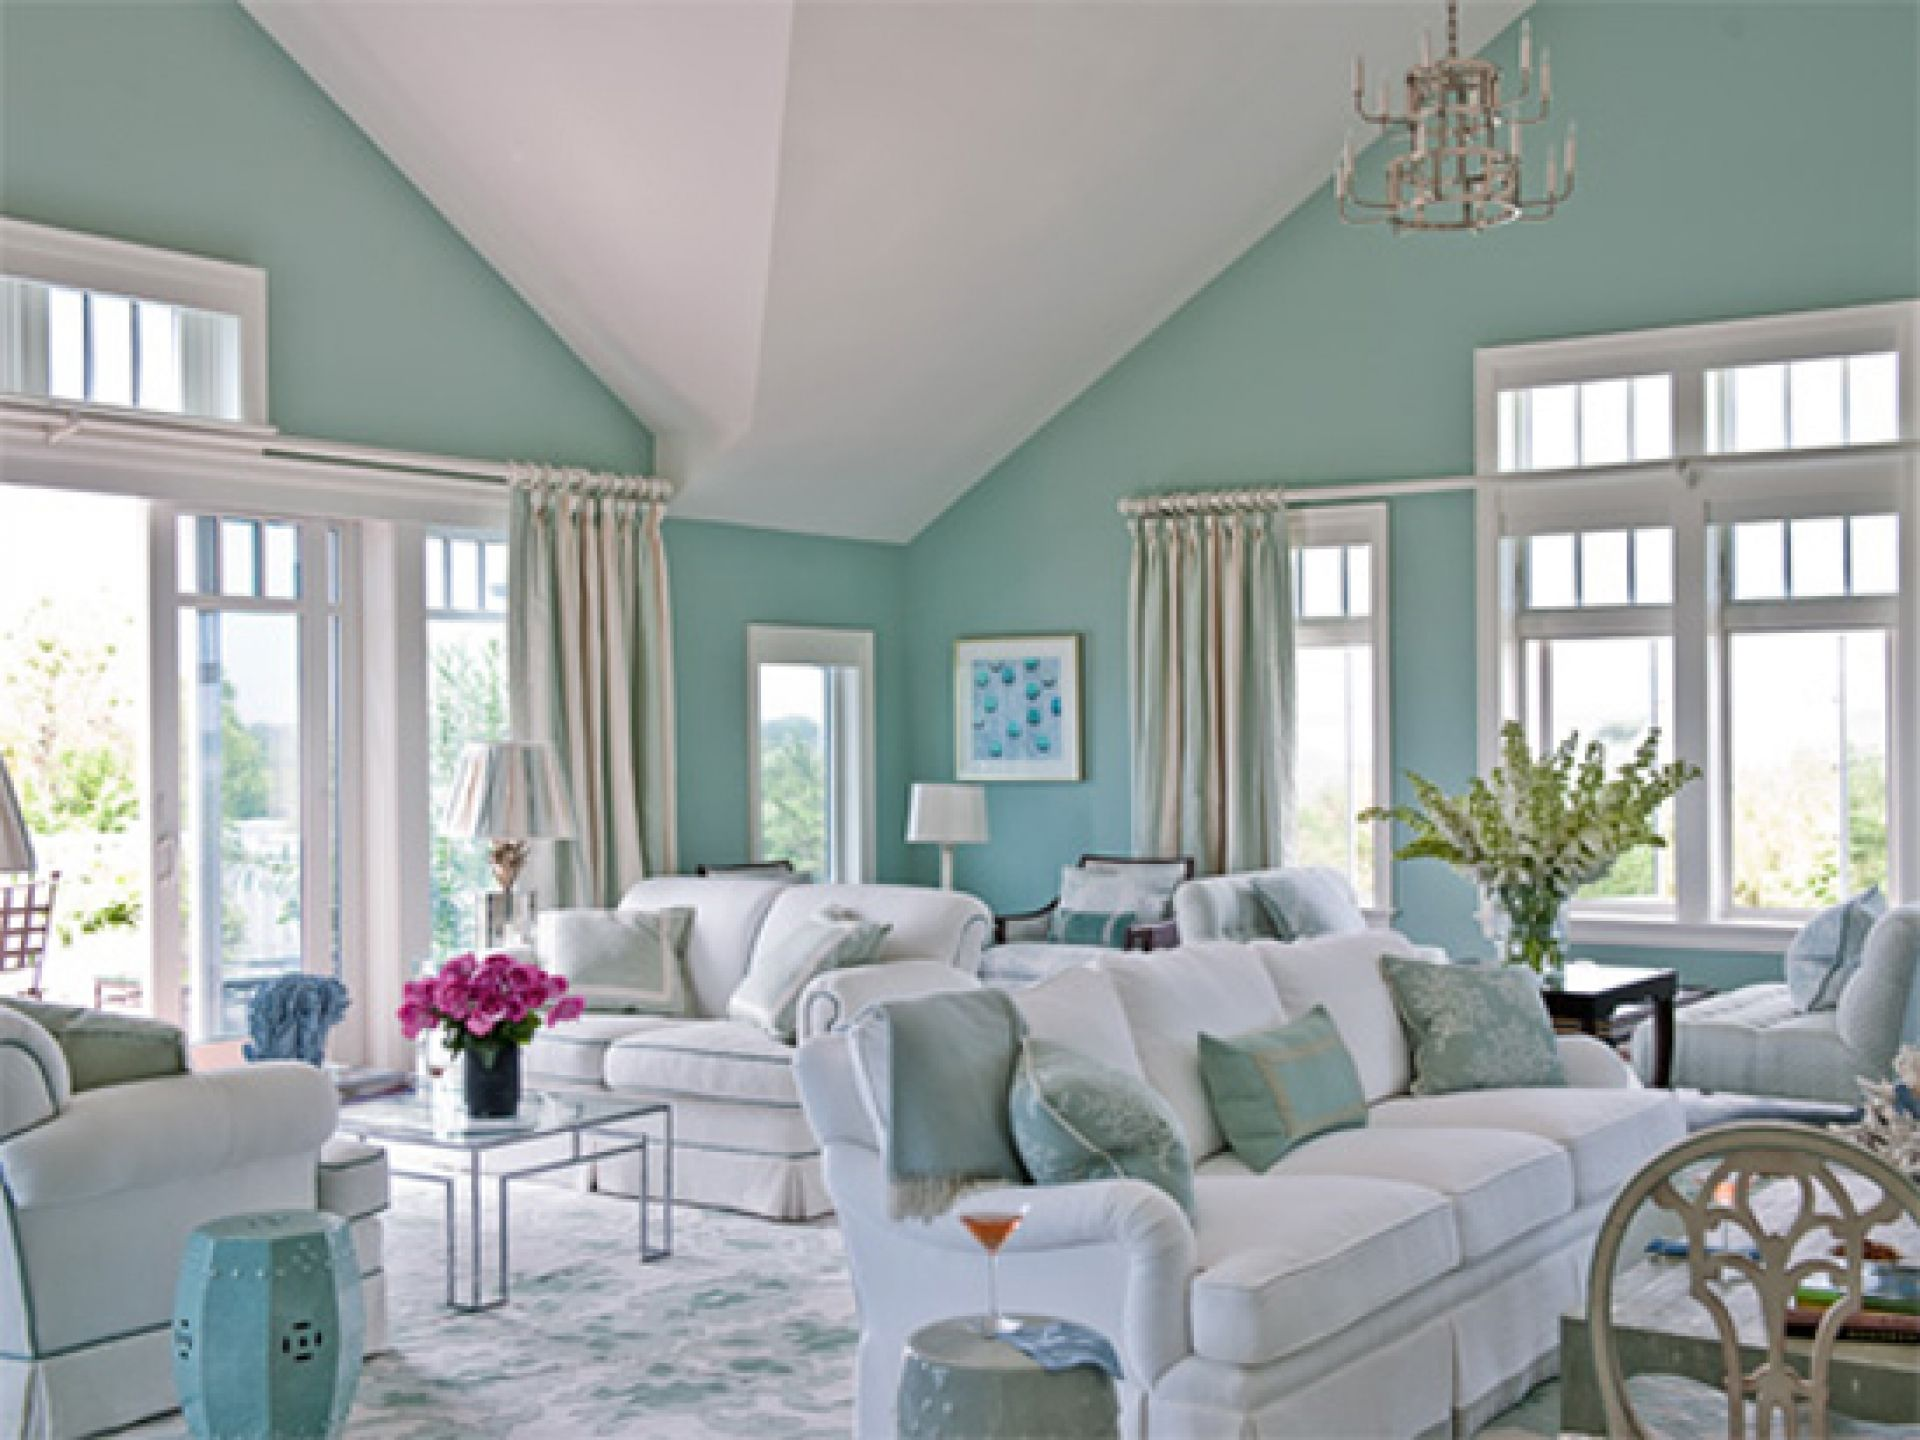 Modern Interior Living Room Ideas With Wall Color Trends 2015 Using Light Blue Painting White Sofa And Luxurious Crystal